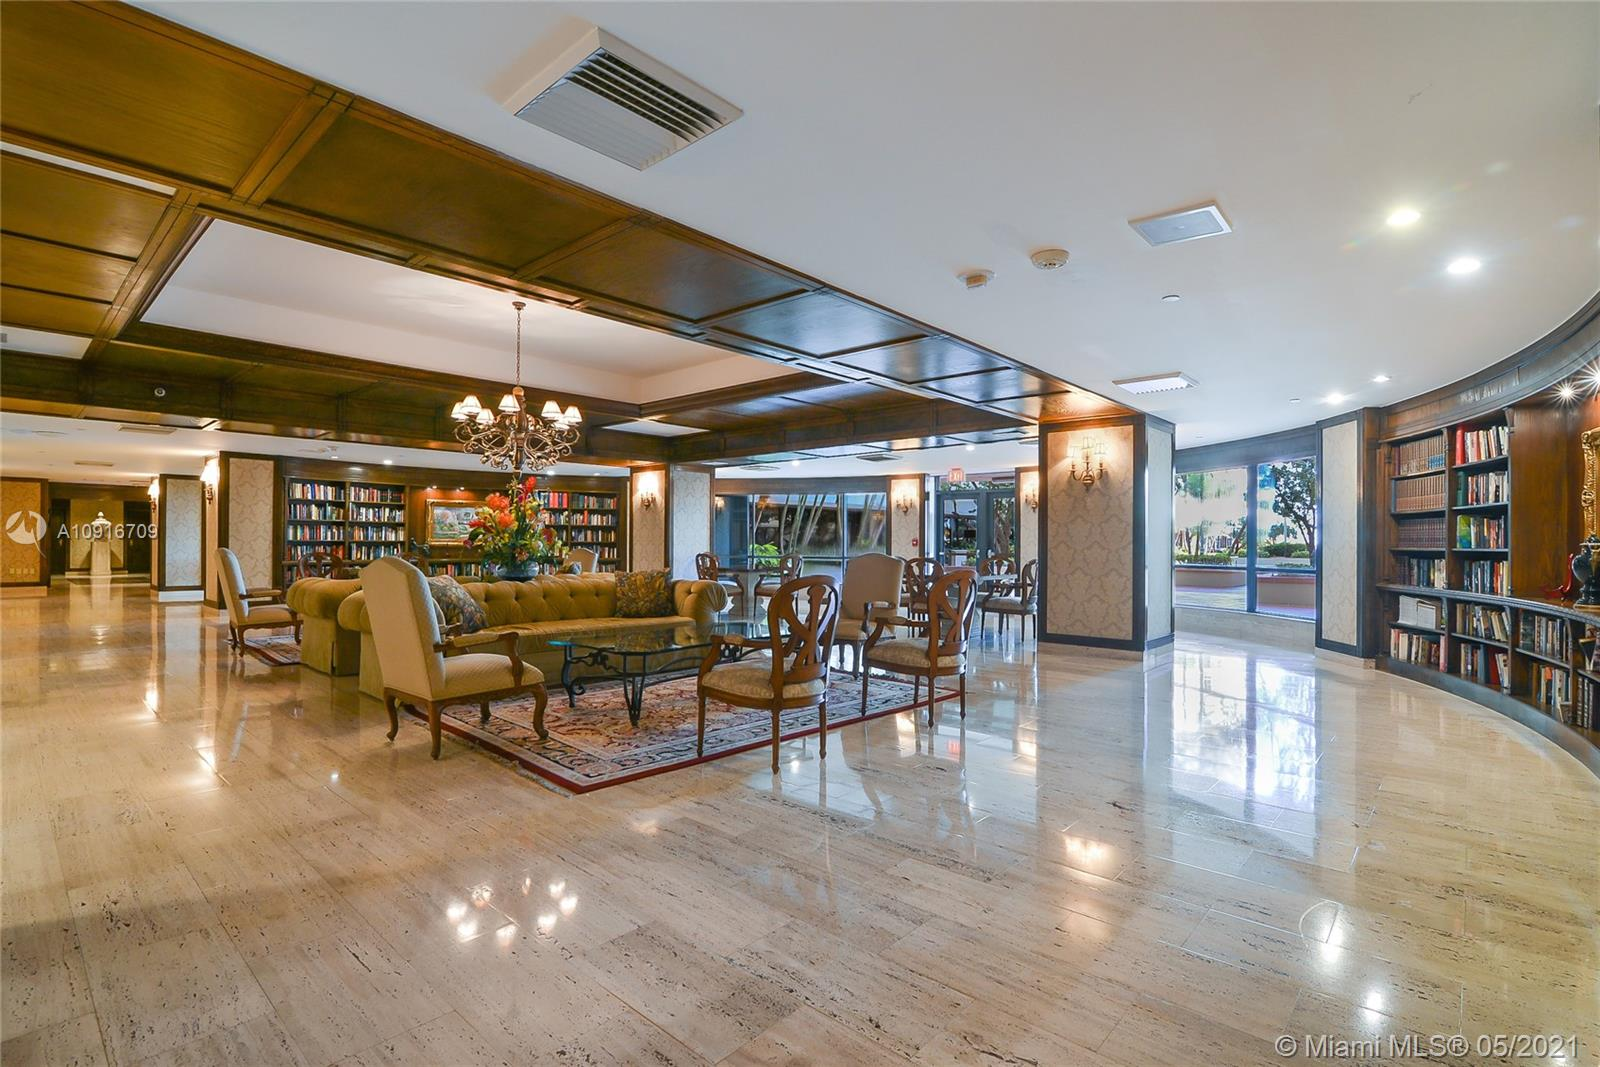 Photo of 9801 Collins Ave #11B Direct Ocean, Bal Harbour, Florida, 33154 - Restaurant inside and outside area at pool area looking the ocean